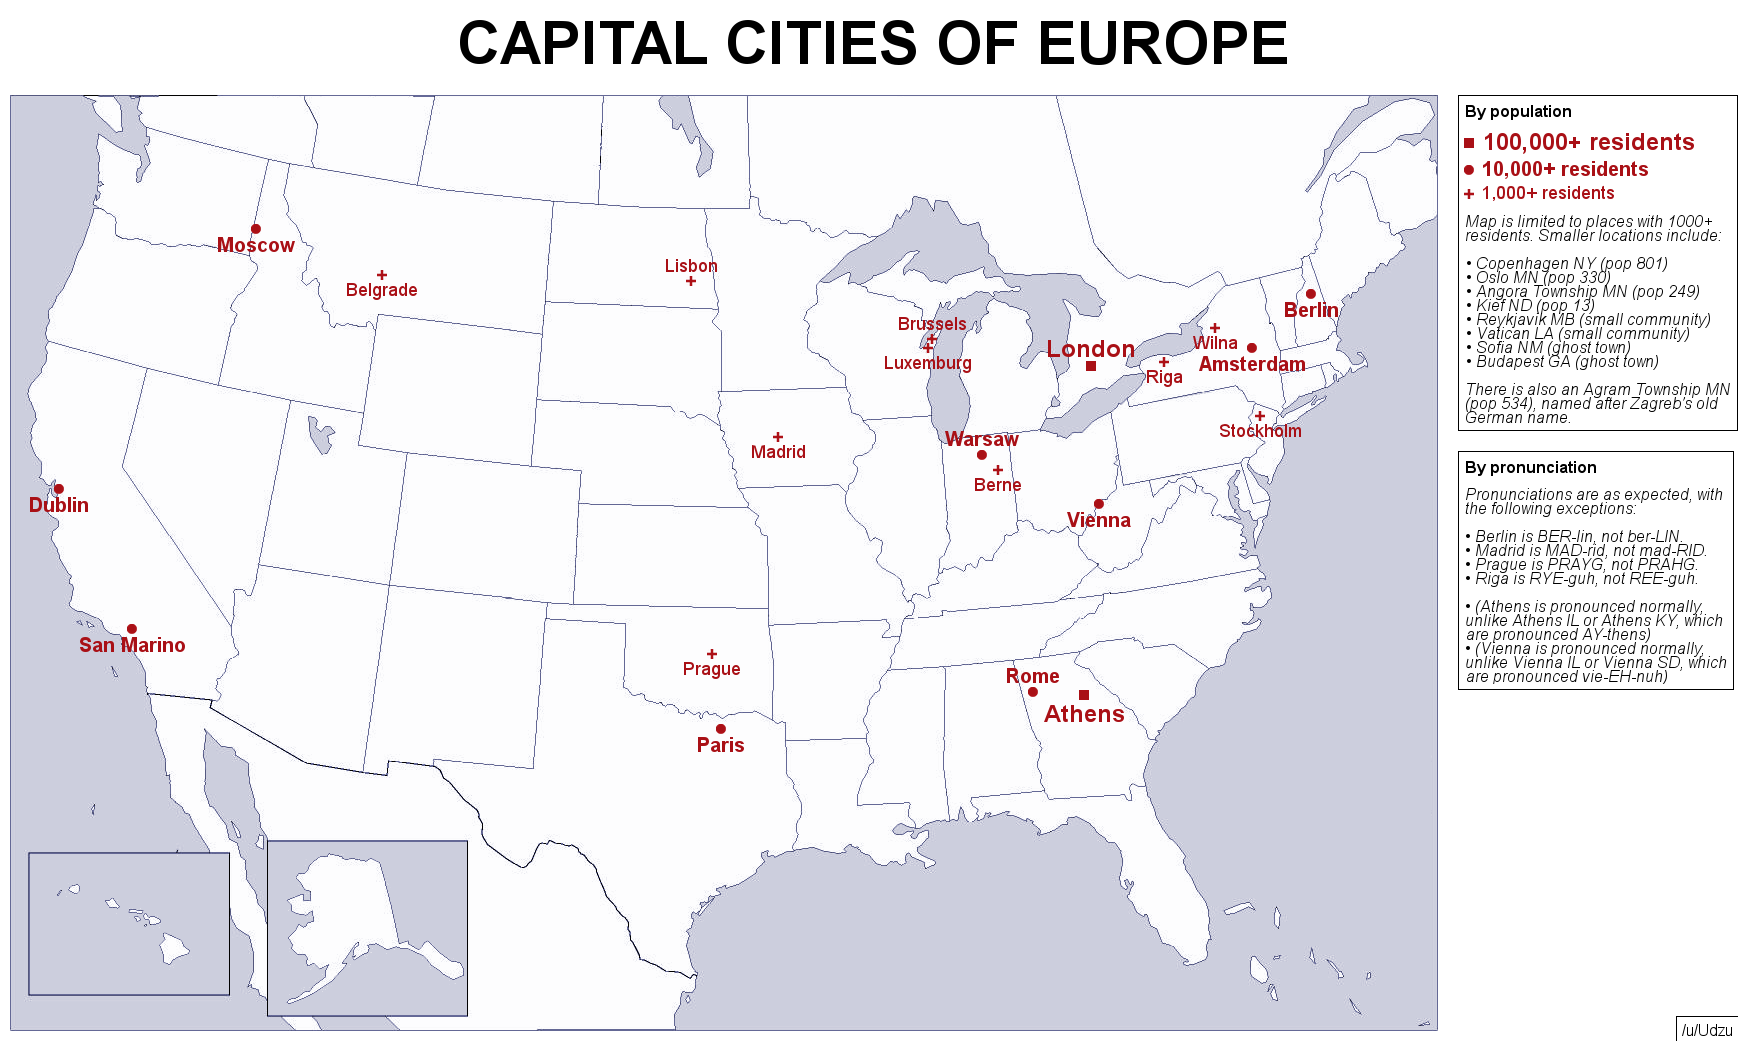 European Capital Cities (US Edition) – Earthly Mission on